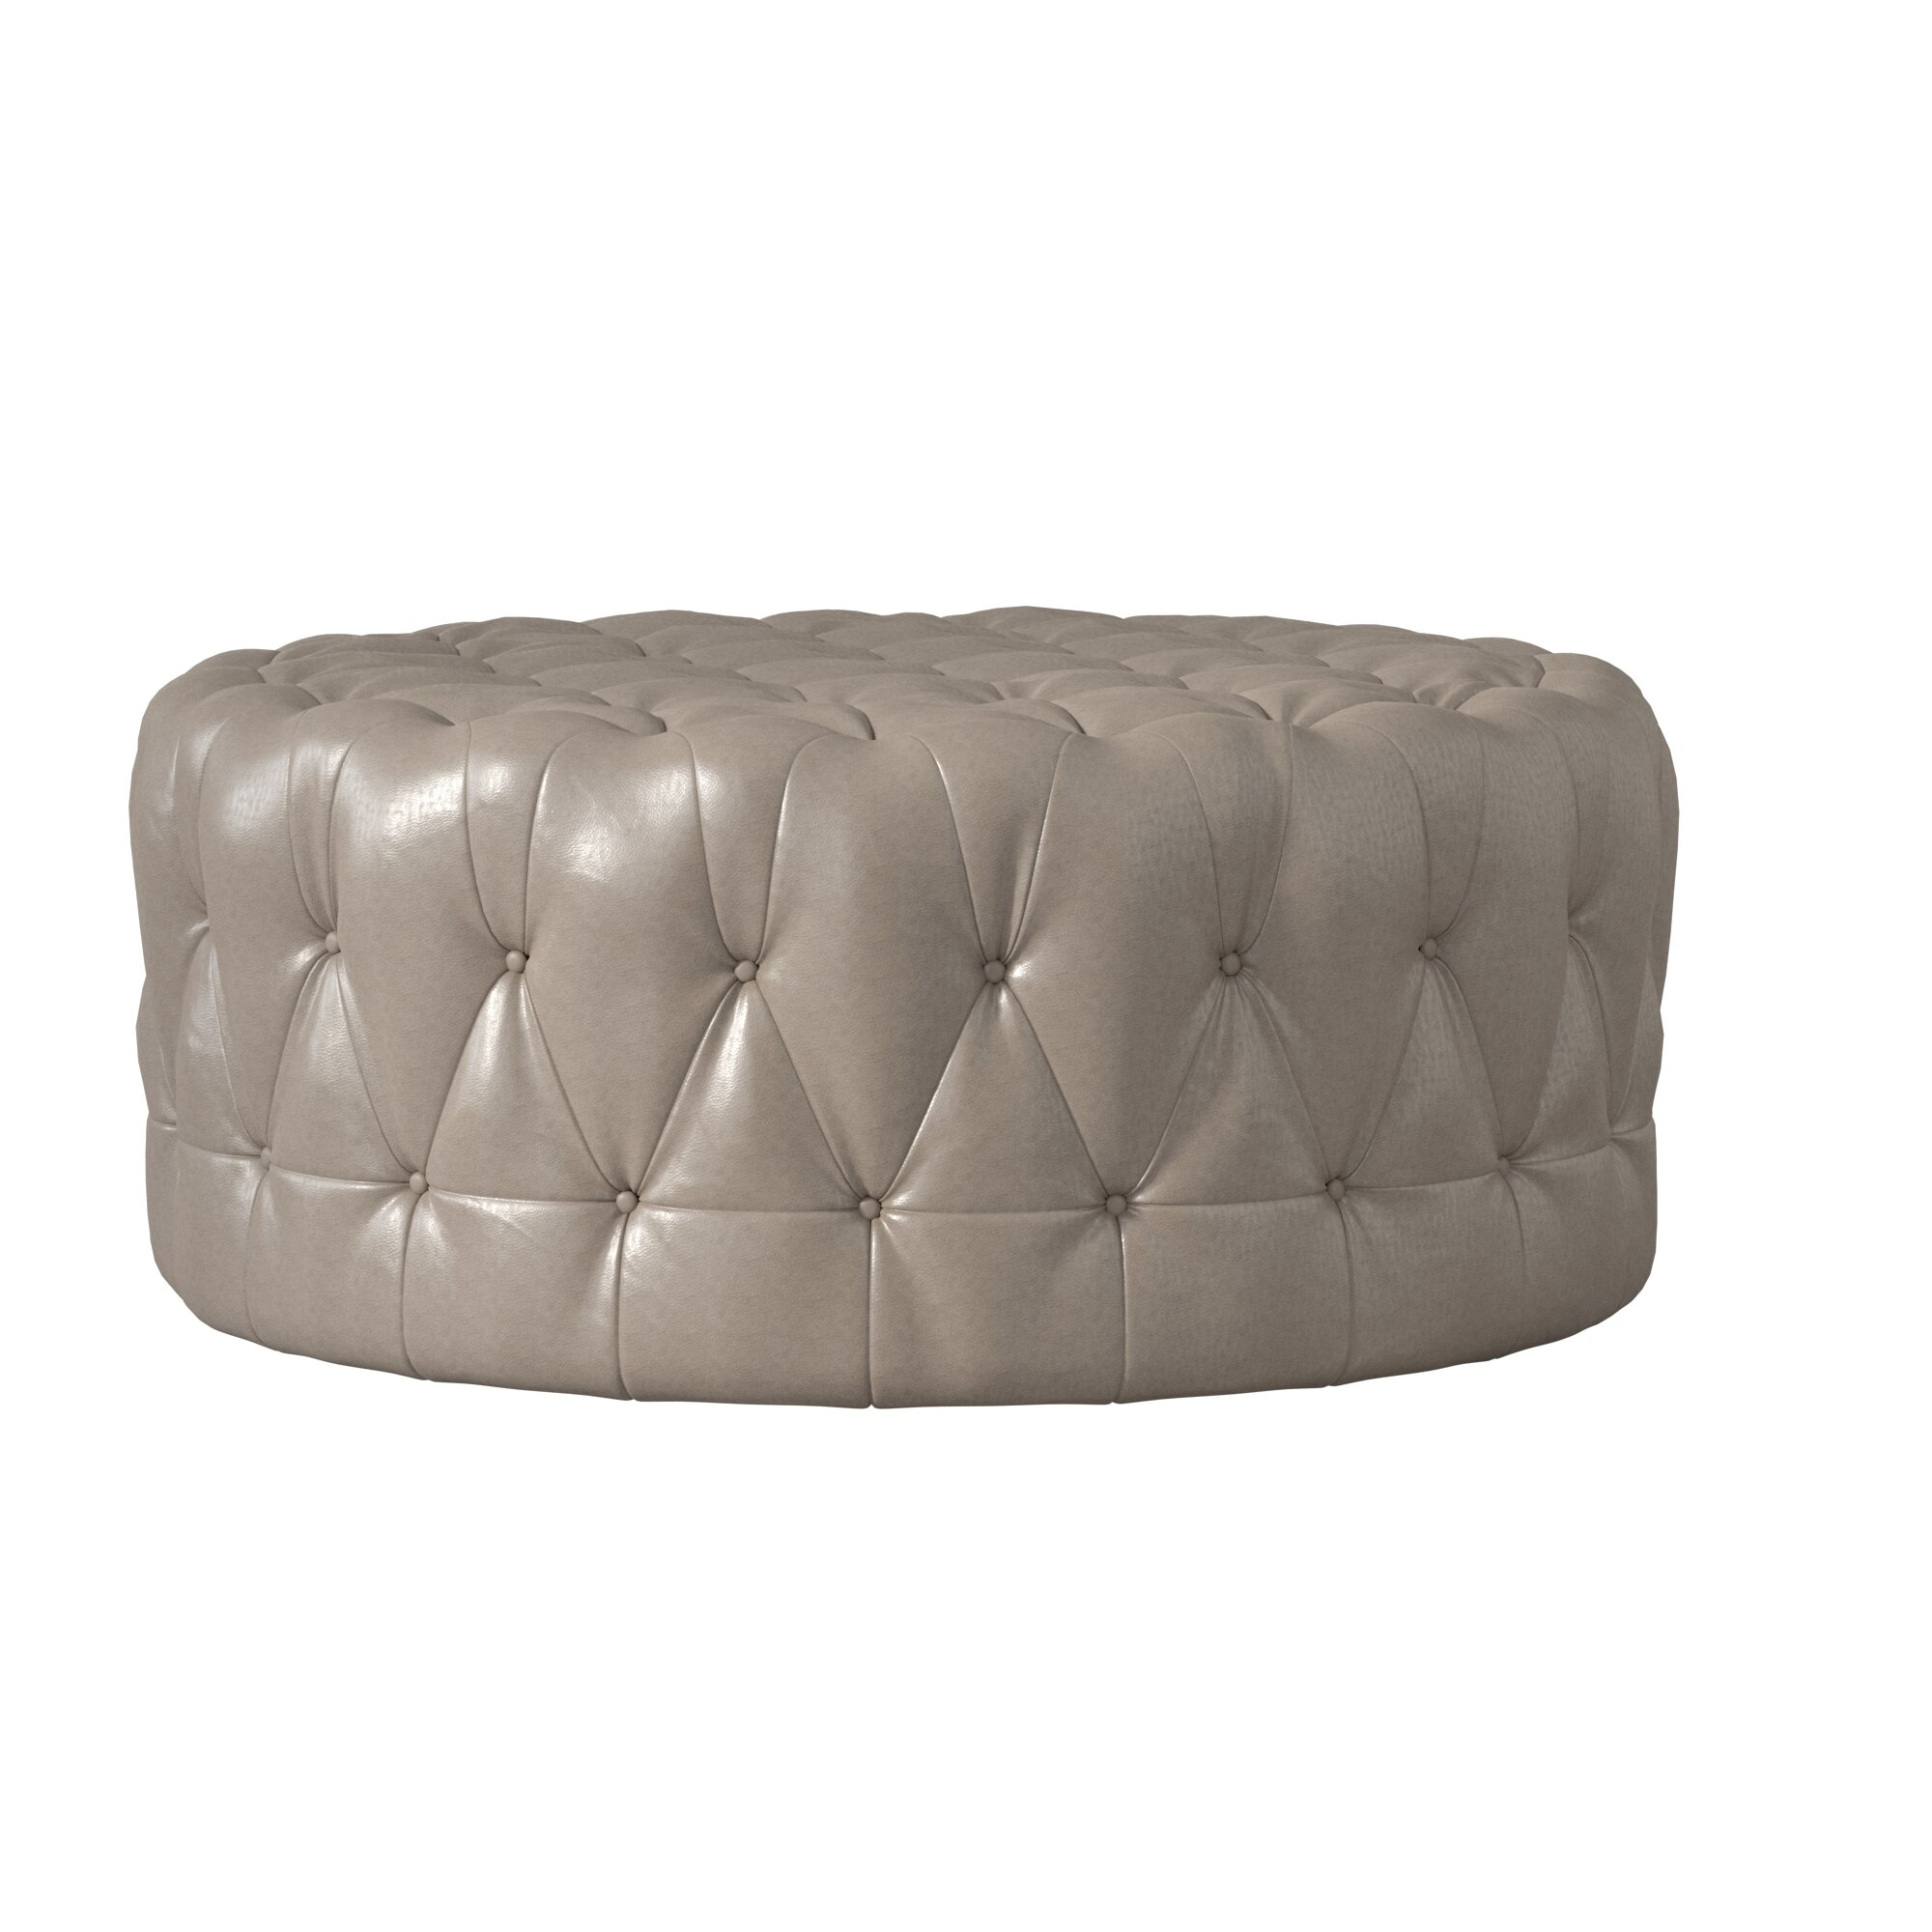 tufted by shipping q today overstock round cocktail home knightsbridge ottoman inspire casters with garden product free artisan